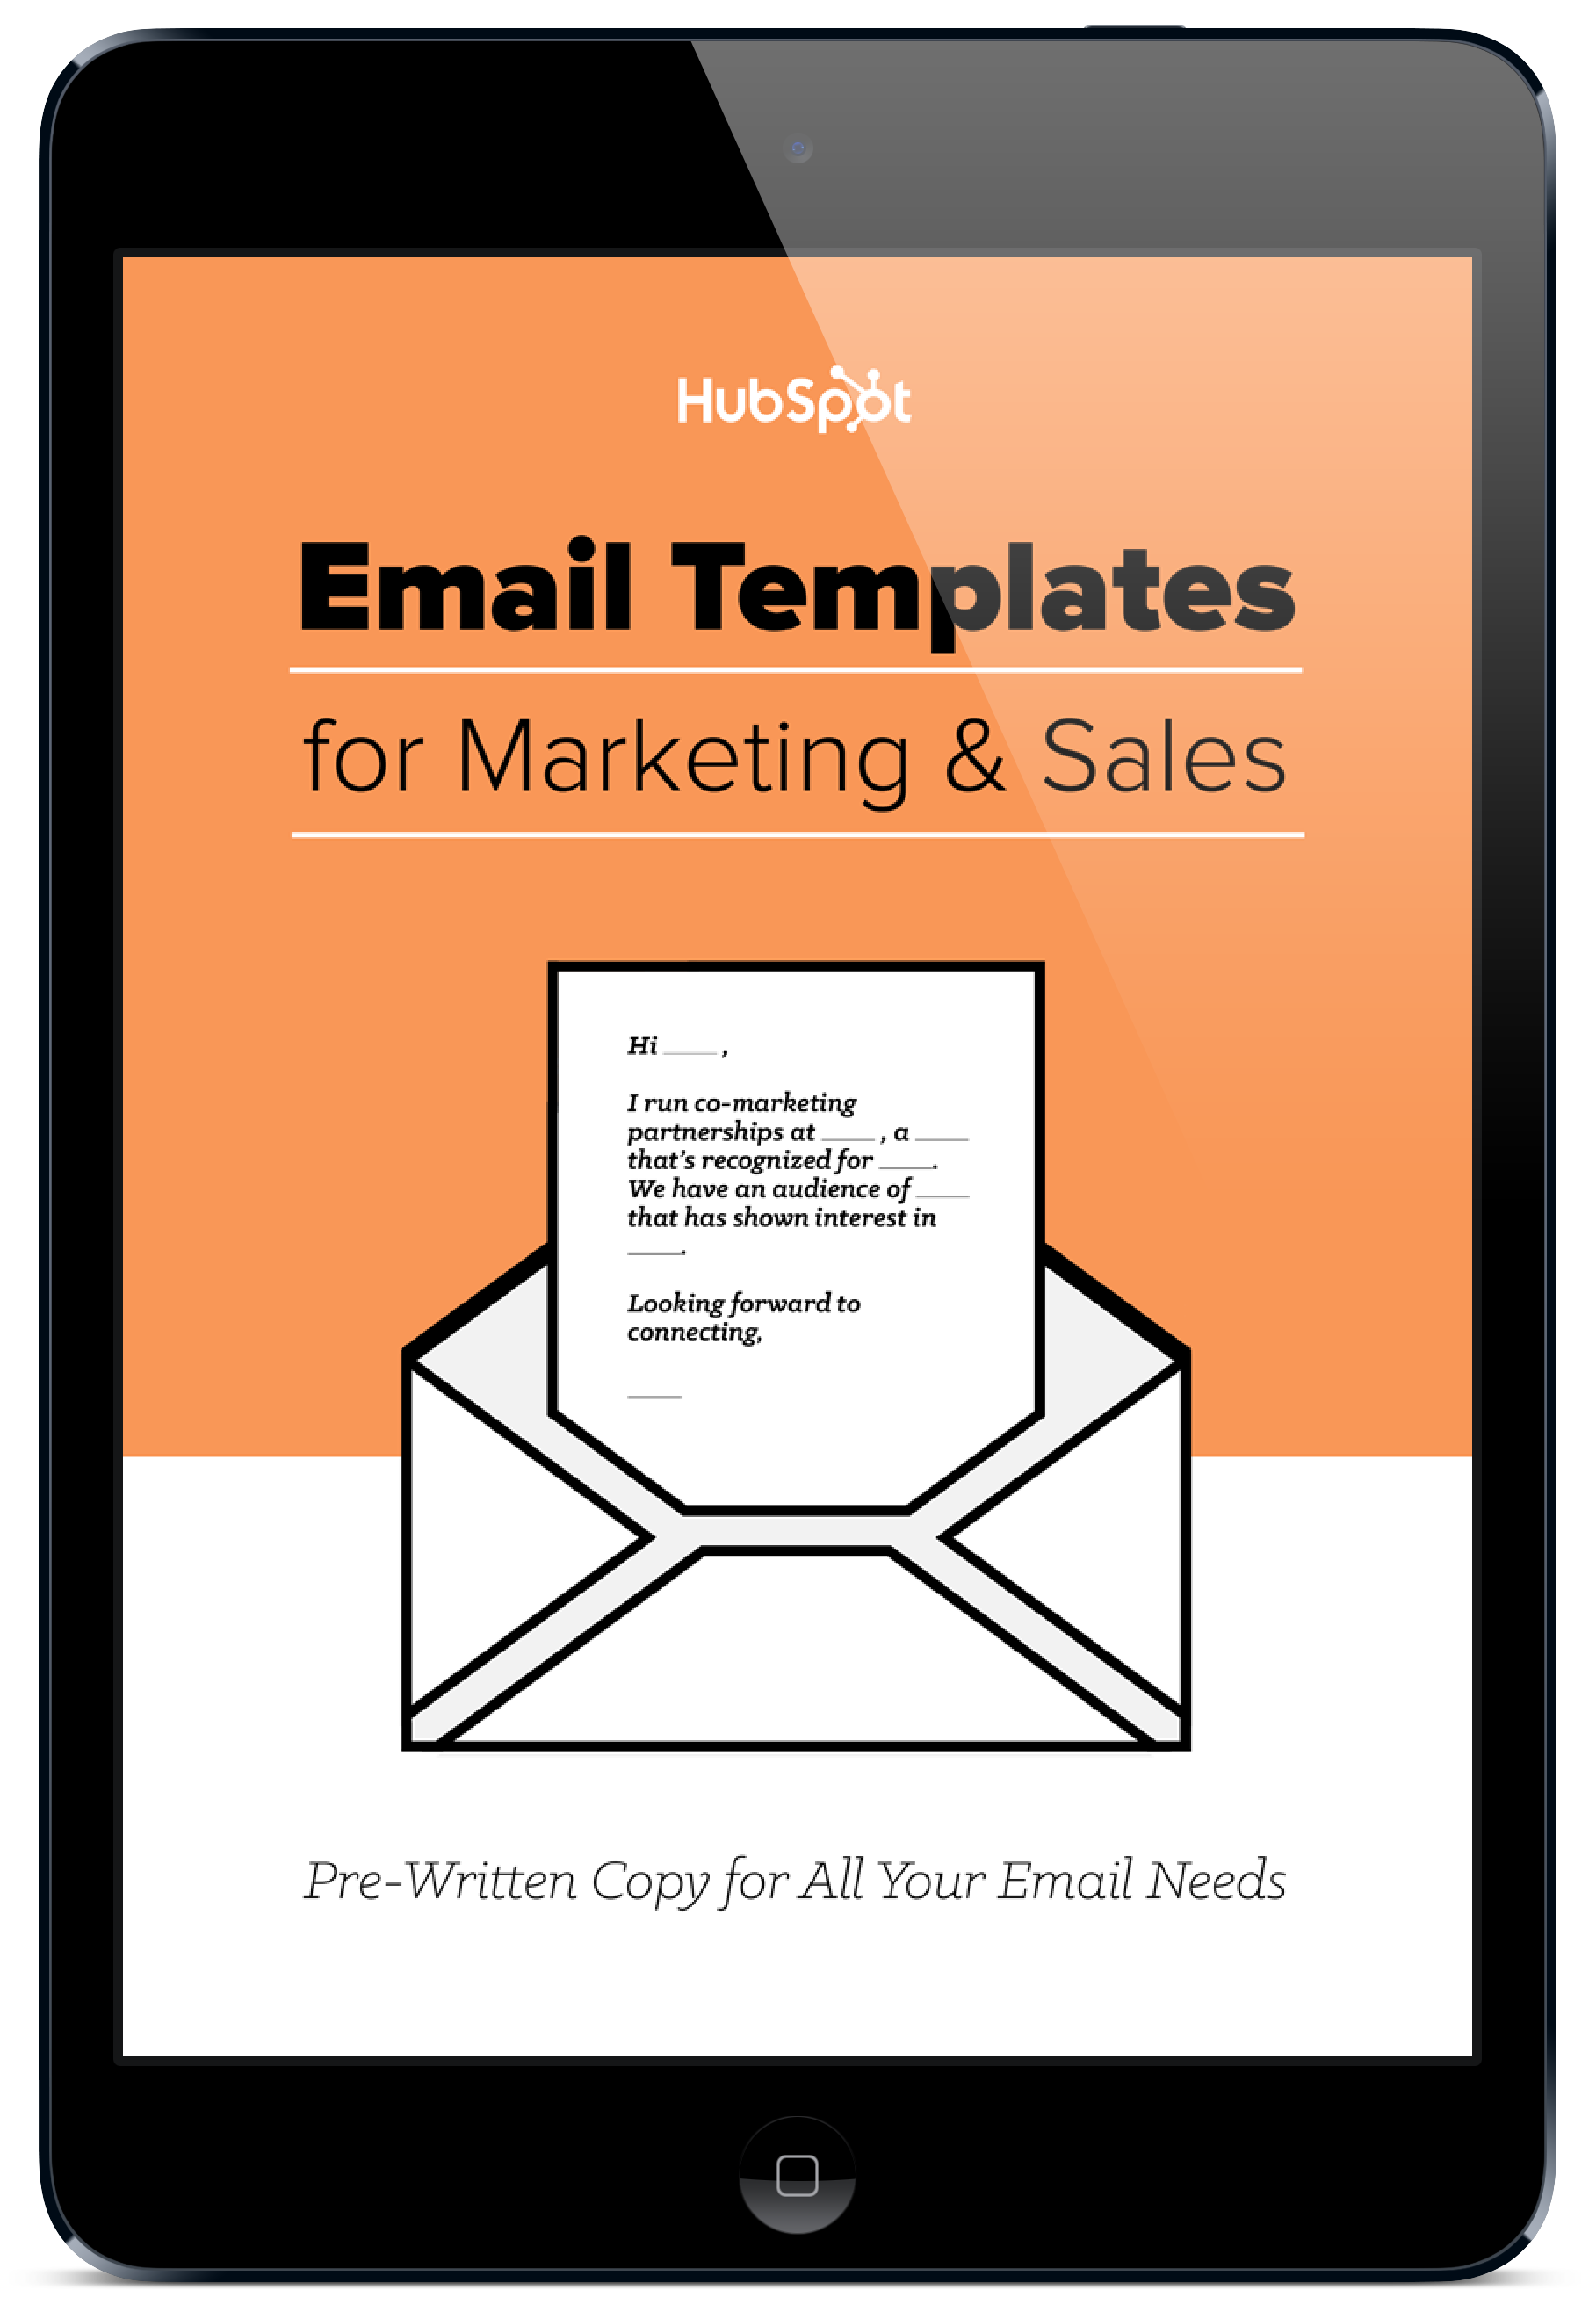 HubSpot Email Templates